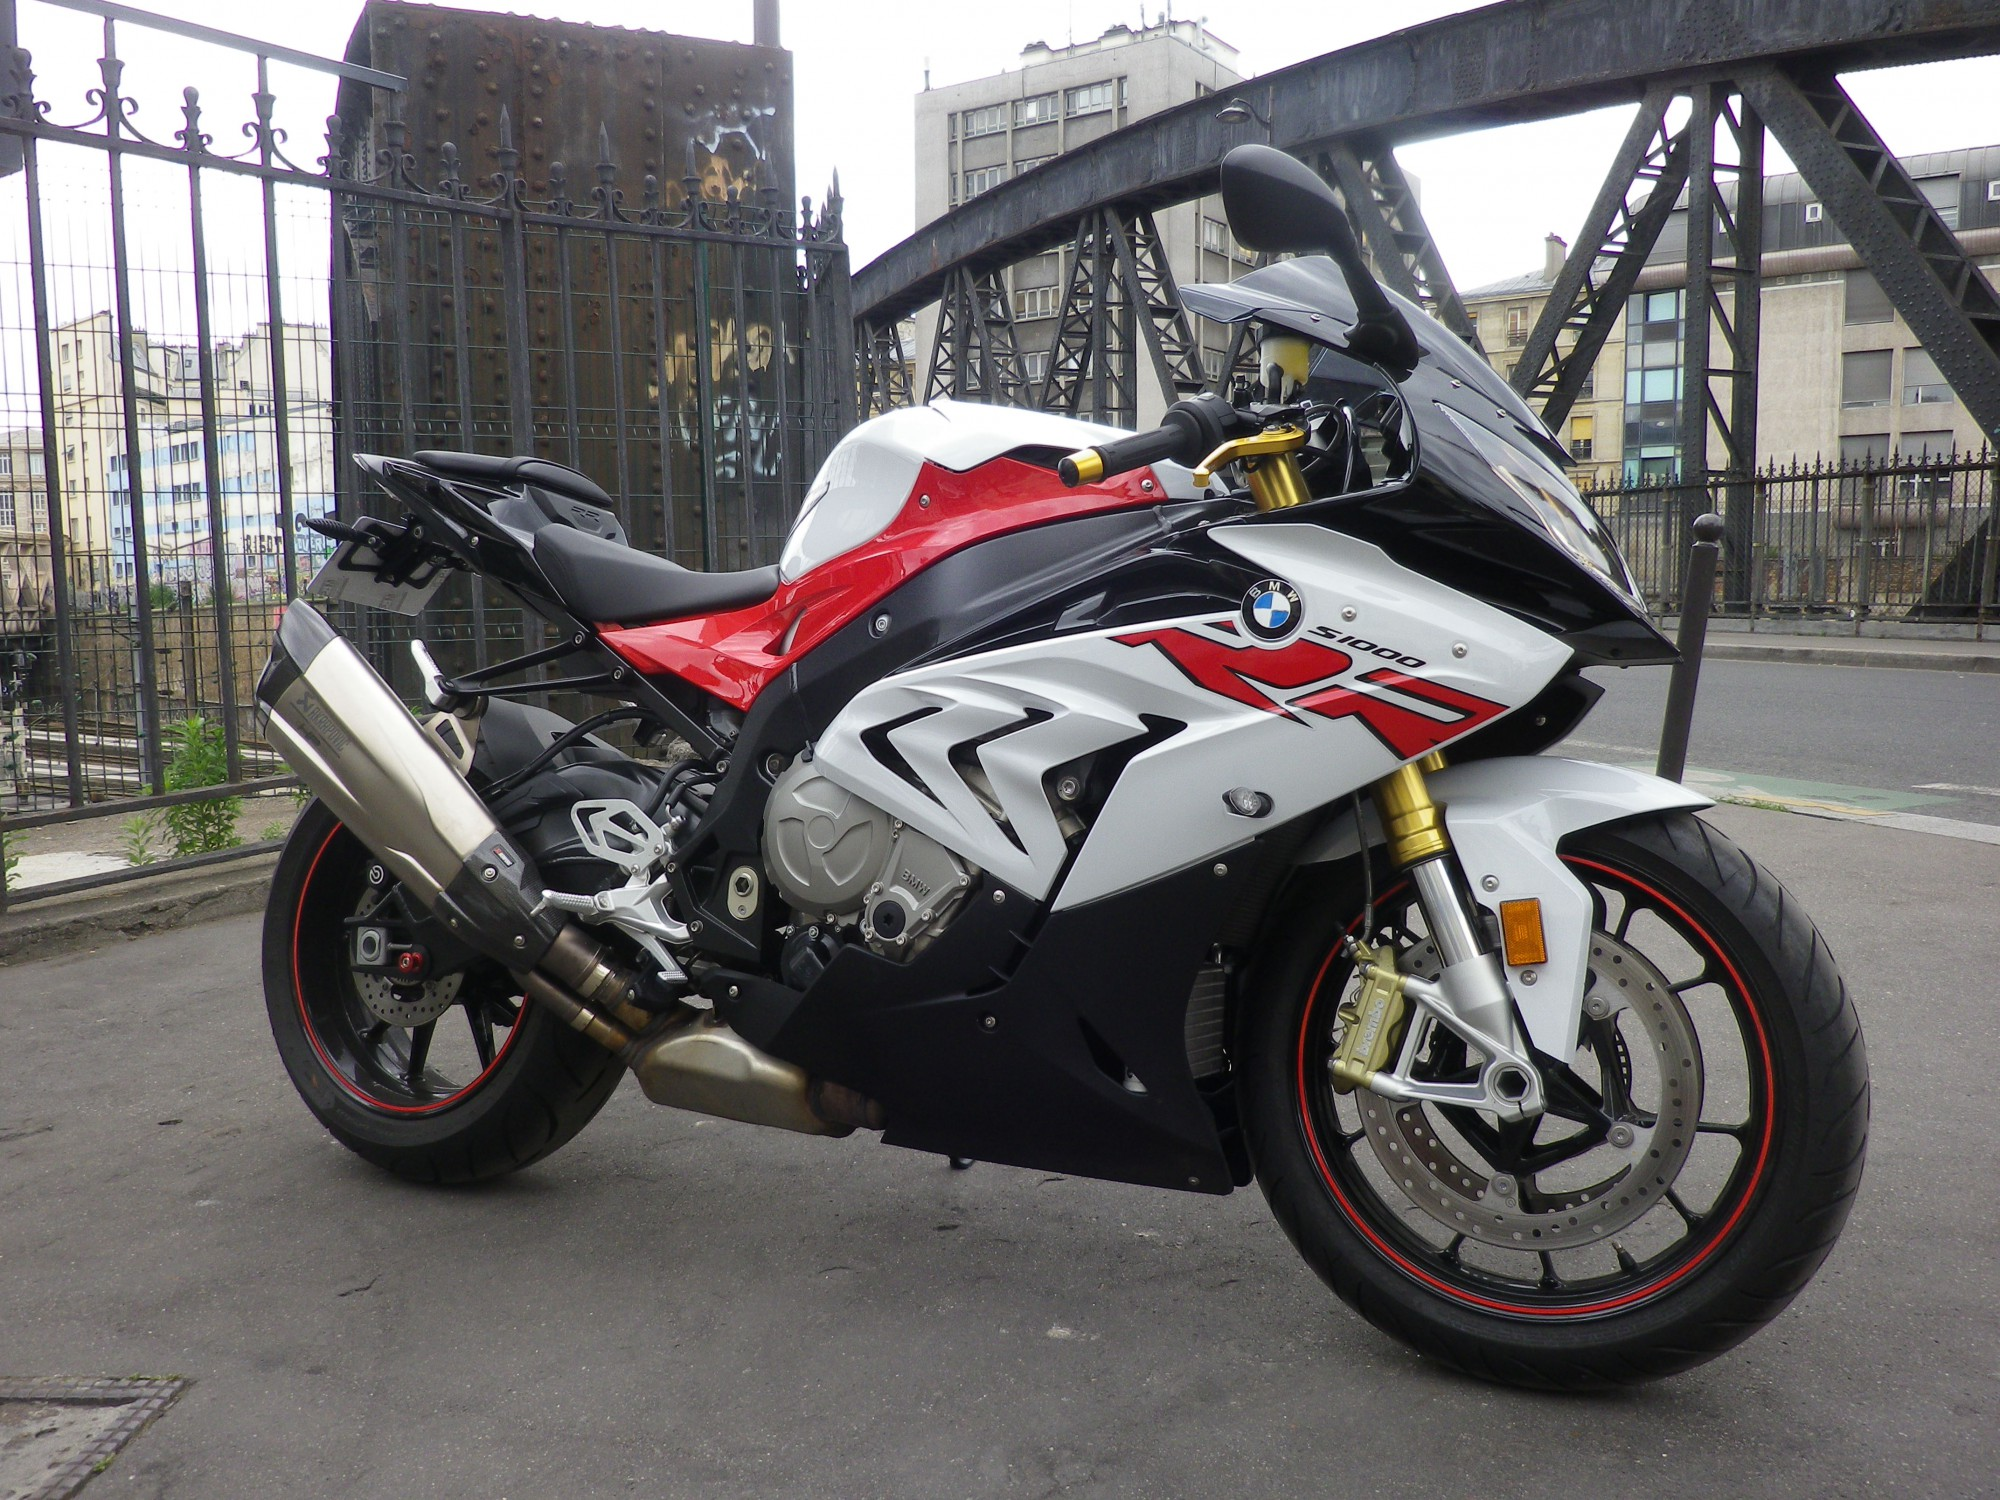 BMW 998 S1000RR ABS/DTC/SHIFTER